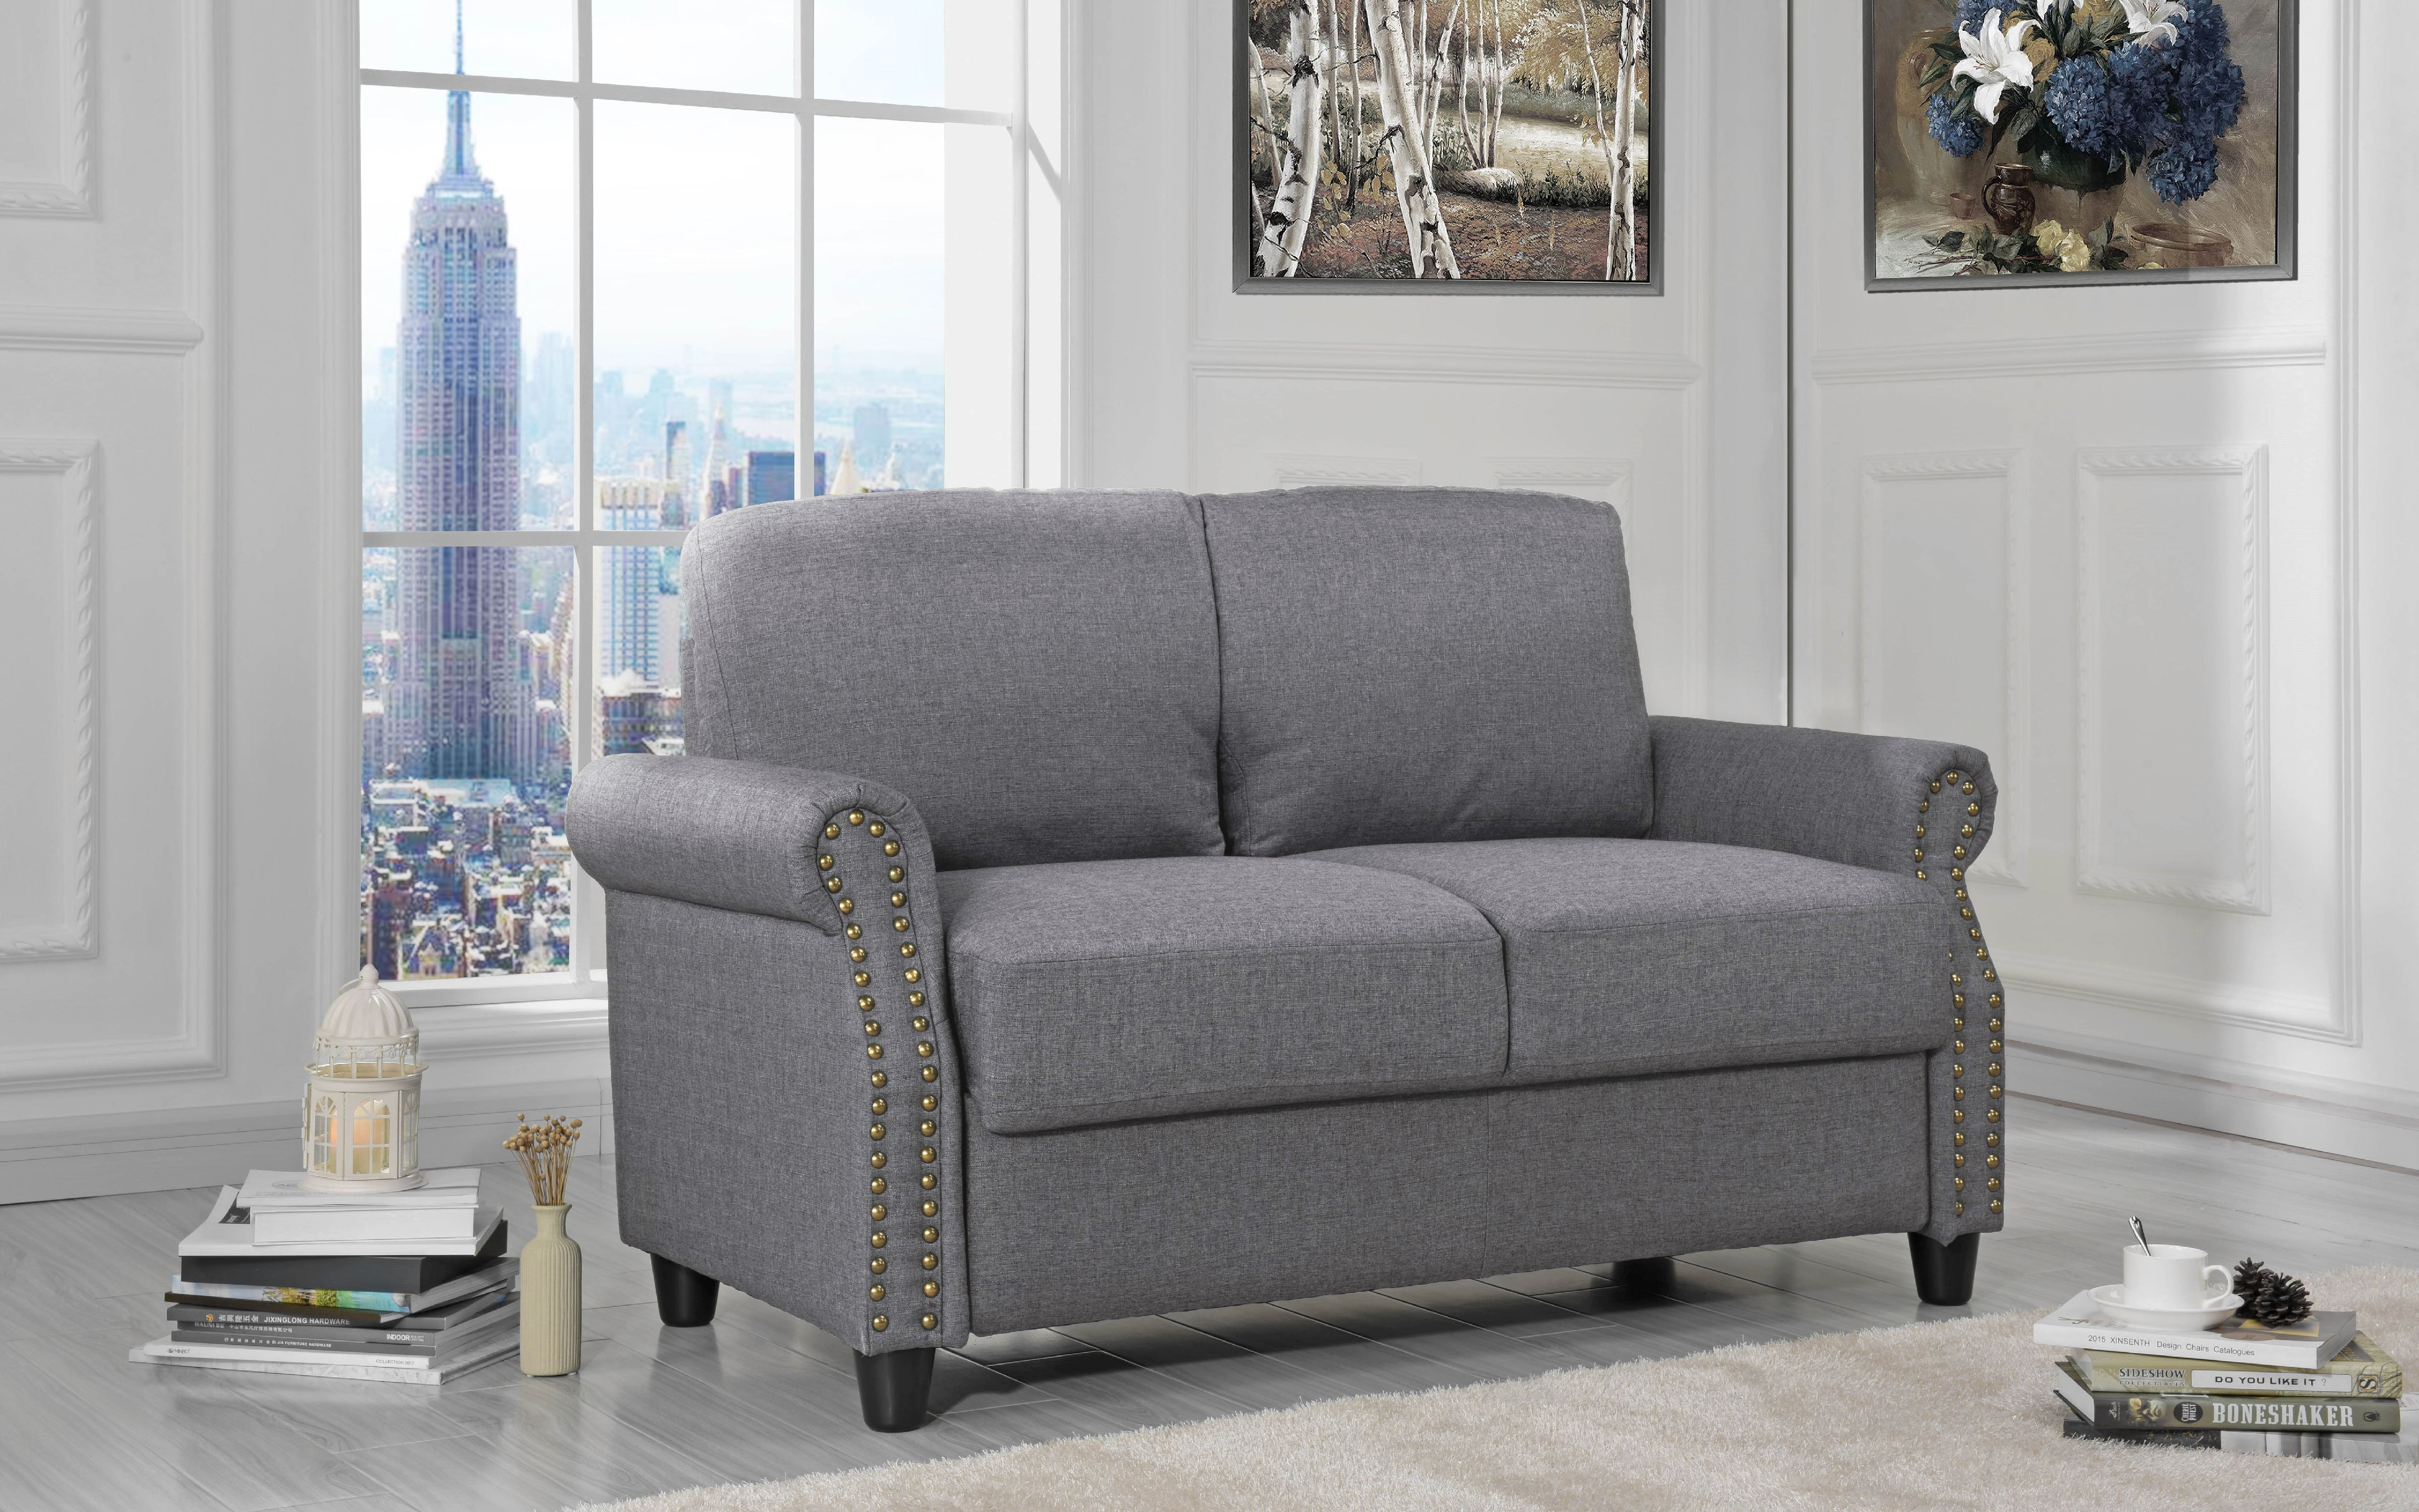 Classic Linen Loveseat With Nailhead Trim And Storage Space, Light Gray    Walmart.com